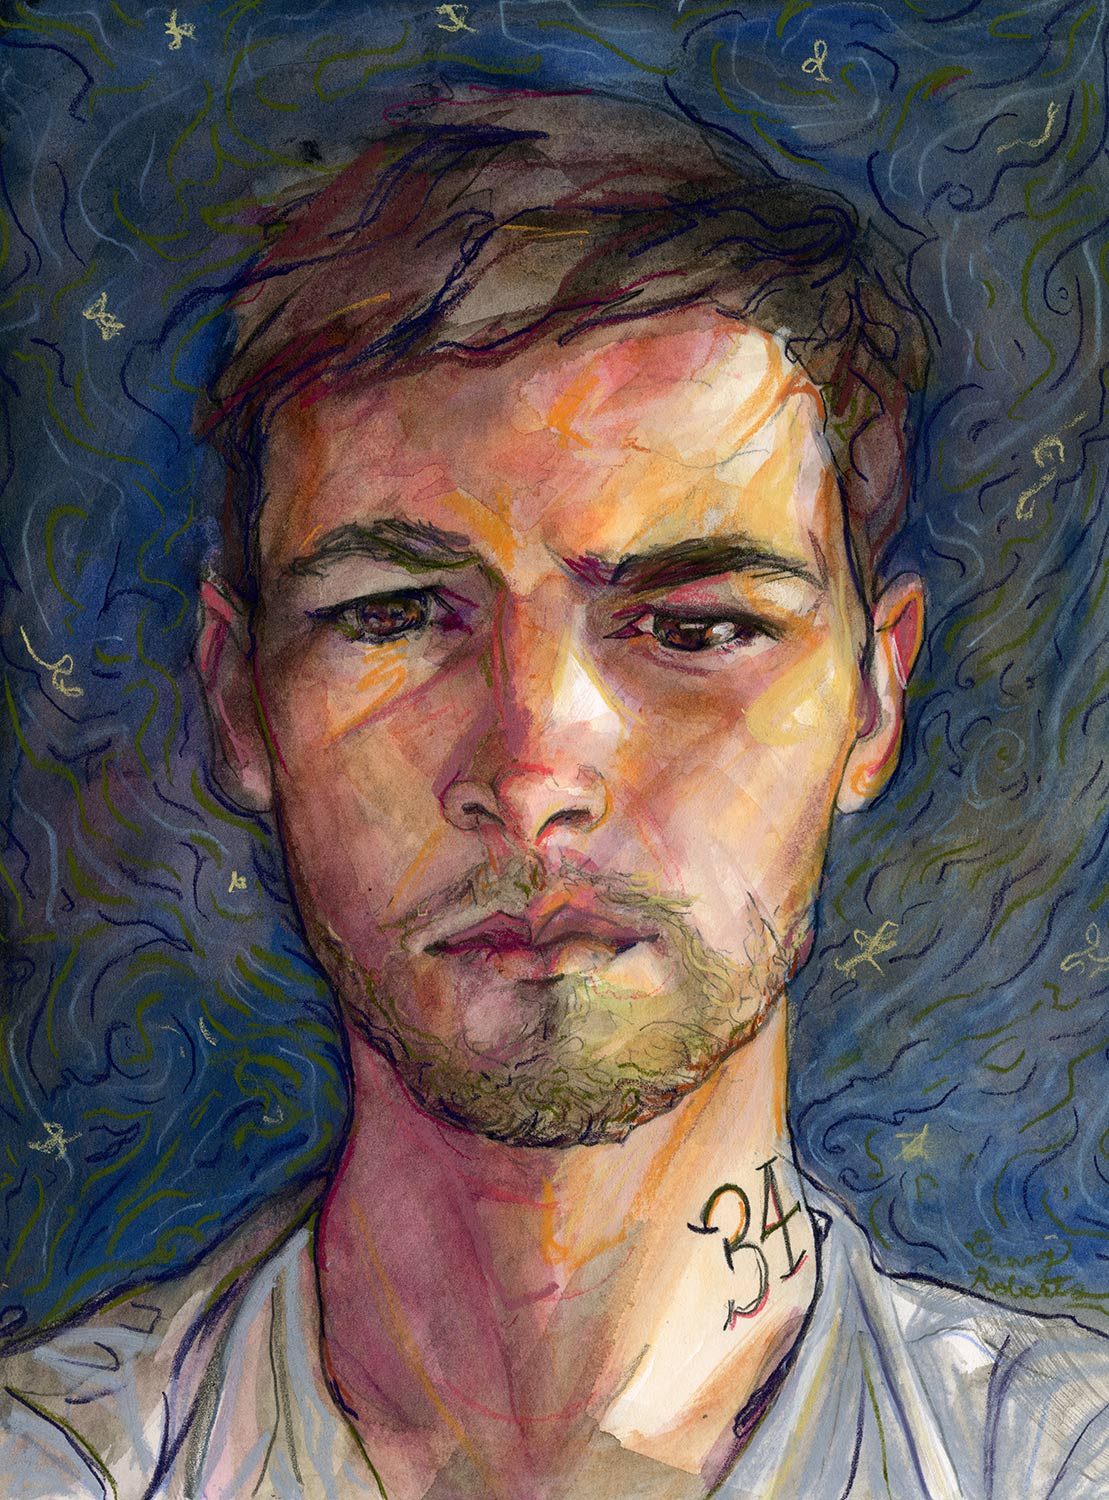 Artist Danny roberts birthday self portrait for his 34th birthday